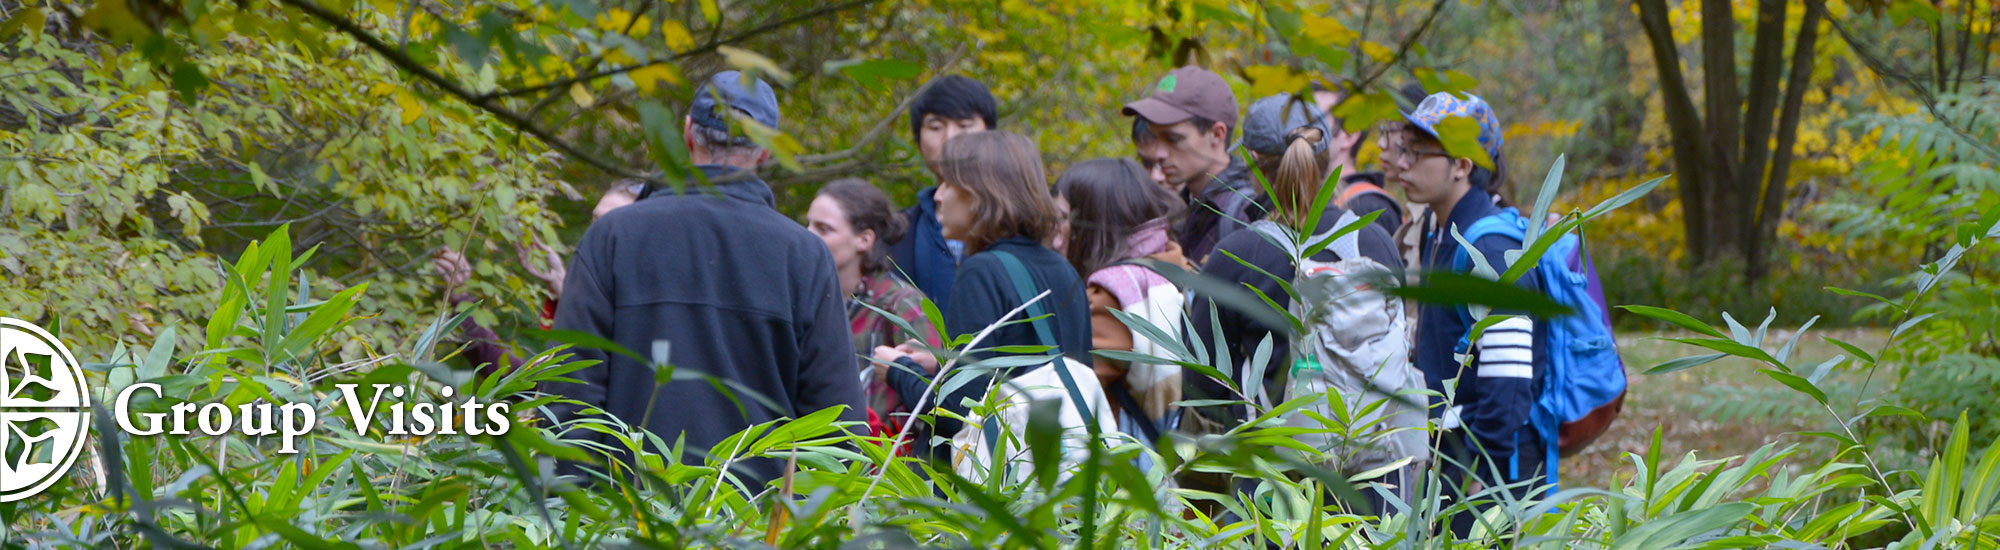 Group Visits to Morris Arboretum